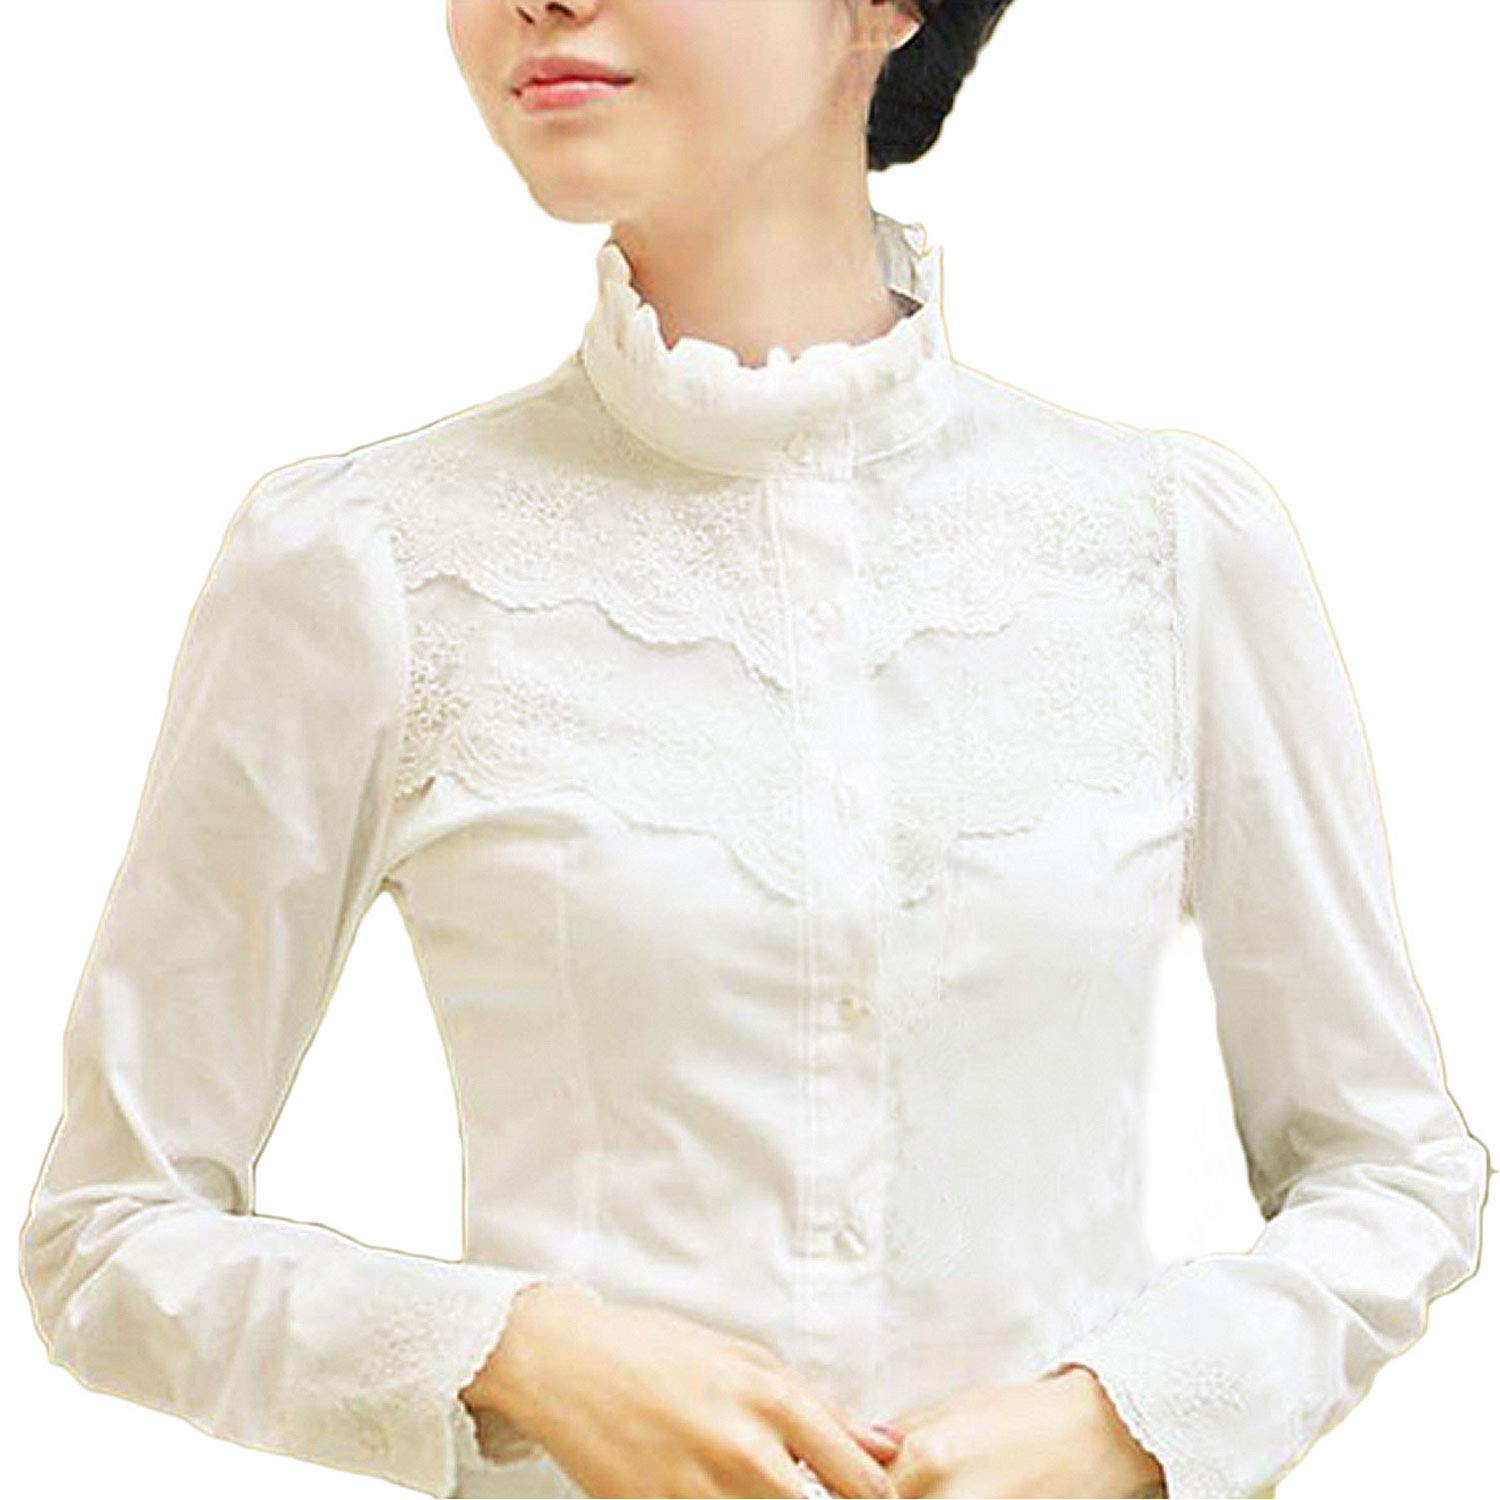 Edwardian Ladies Clothing – 1900, 1910s, Titanic Era Nonbrand Winter Office Long Sleeve Shirt Lace Top Womens Vintage Blouse Ladies Victorian Tops £15.42 AT vintagedancer.com